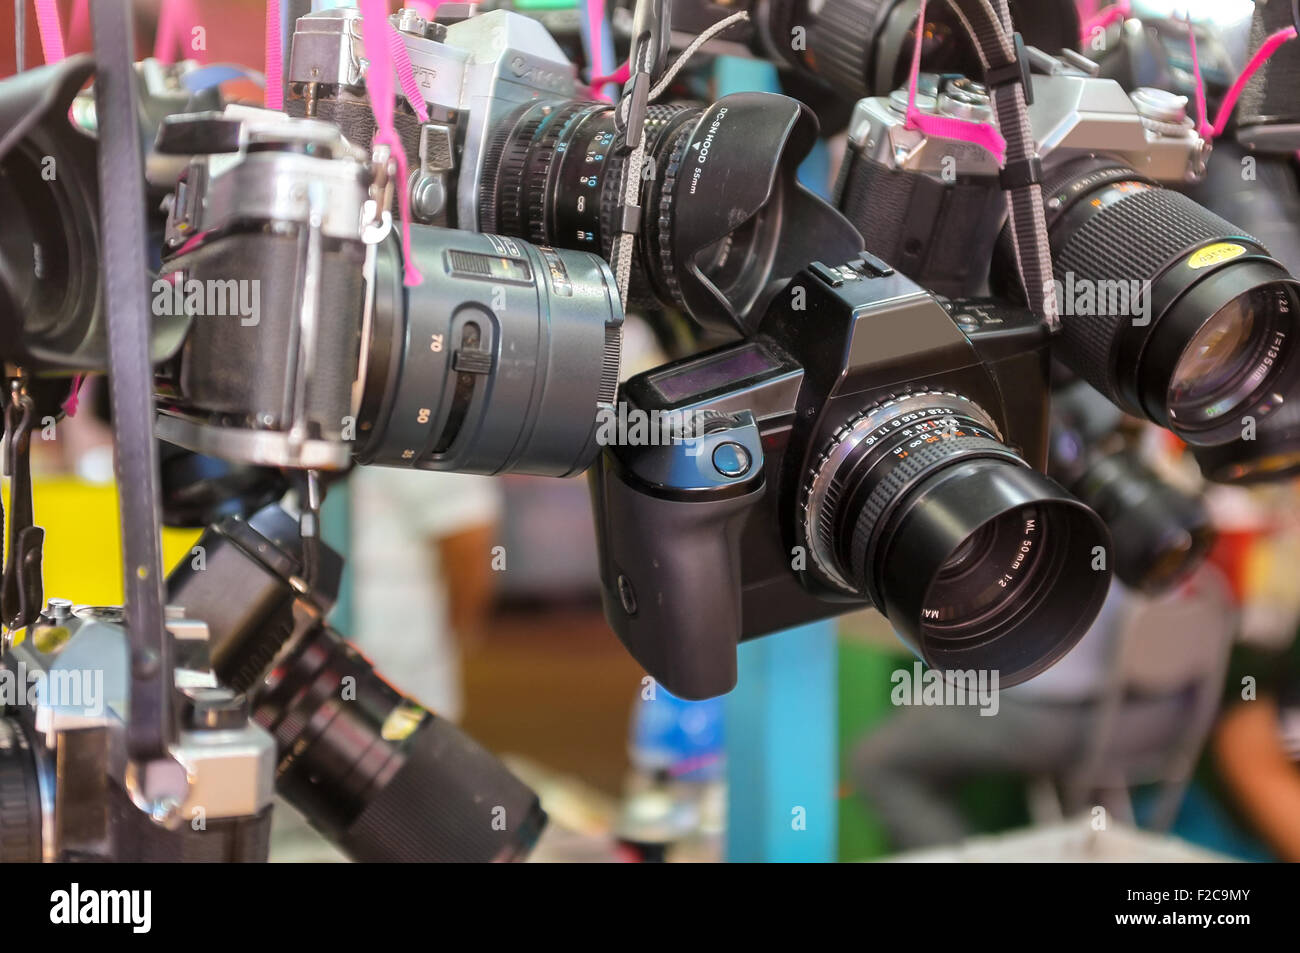 Old cameras hanging up for sale at an outdoor market in Hong Kong - Stock Image